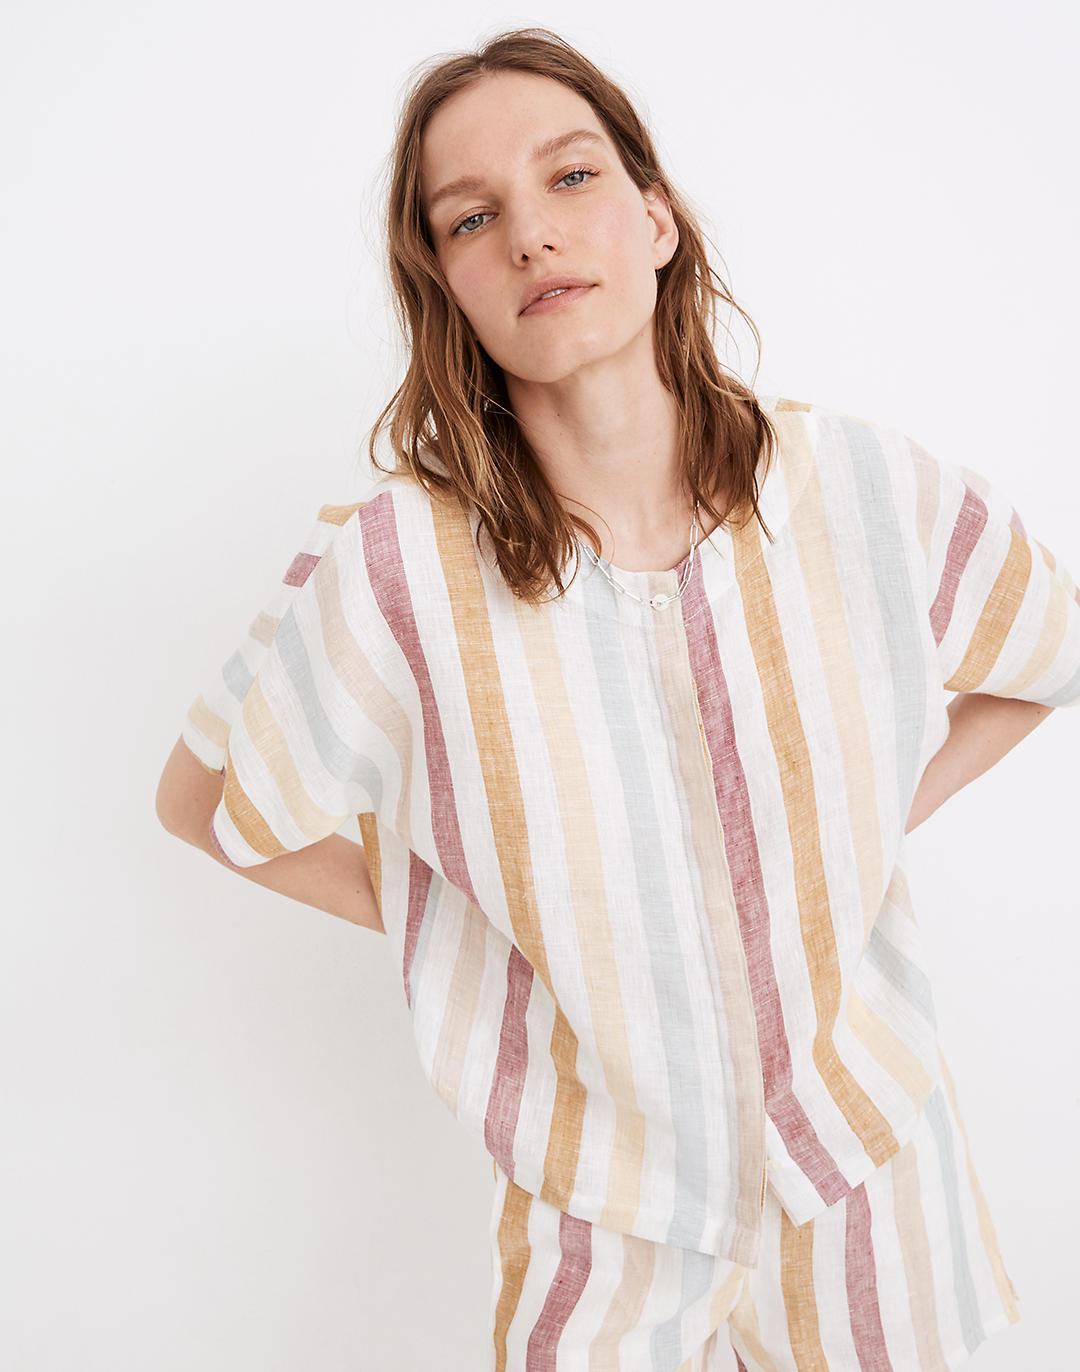 Madewell x LAUDE the Label Bo Button-Down Shirt in Painter Stripe